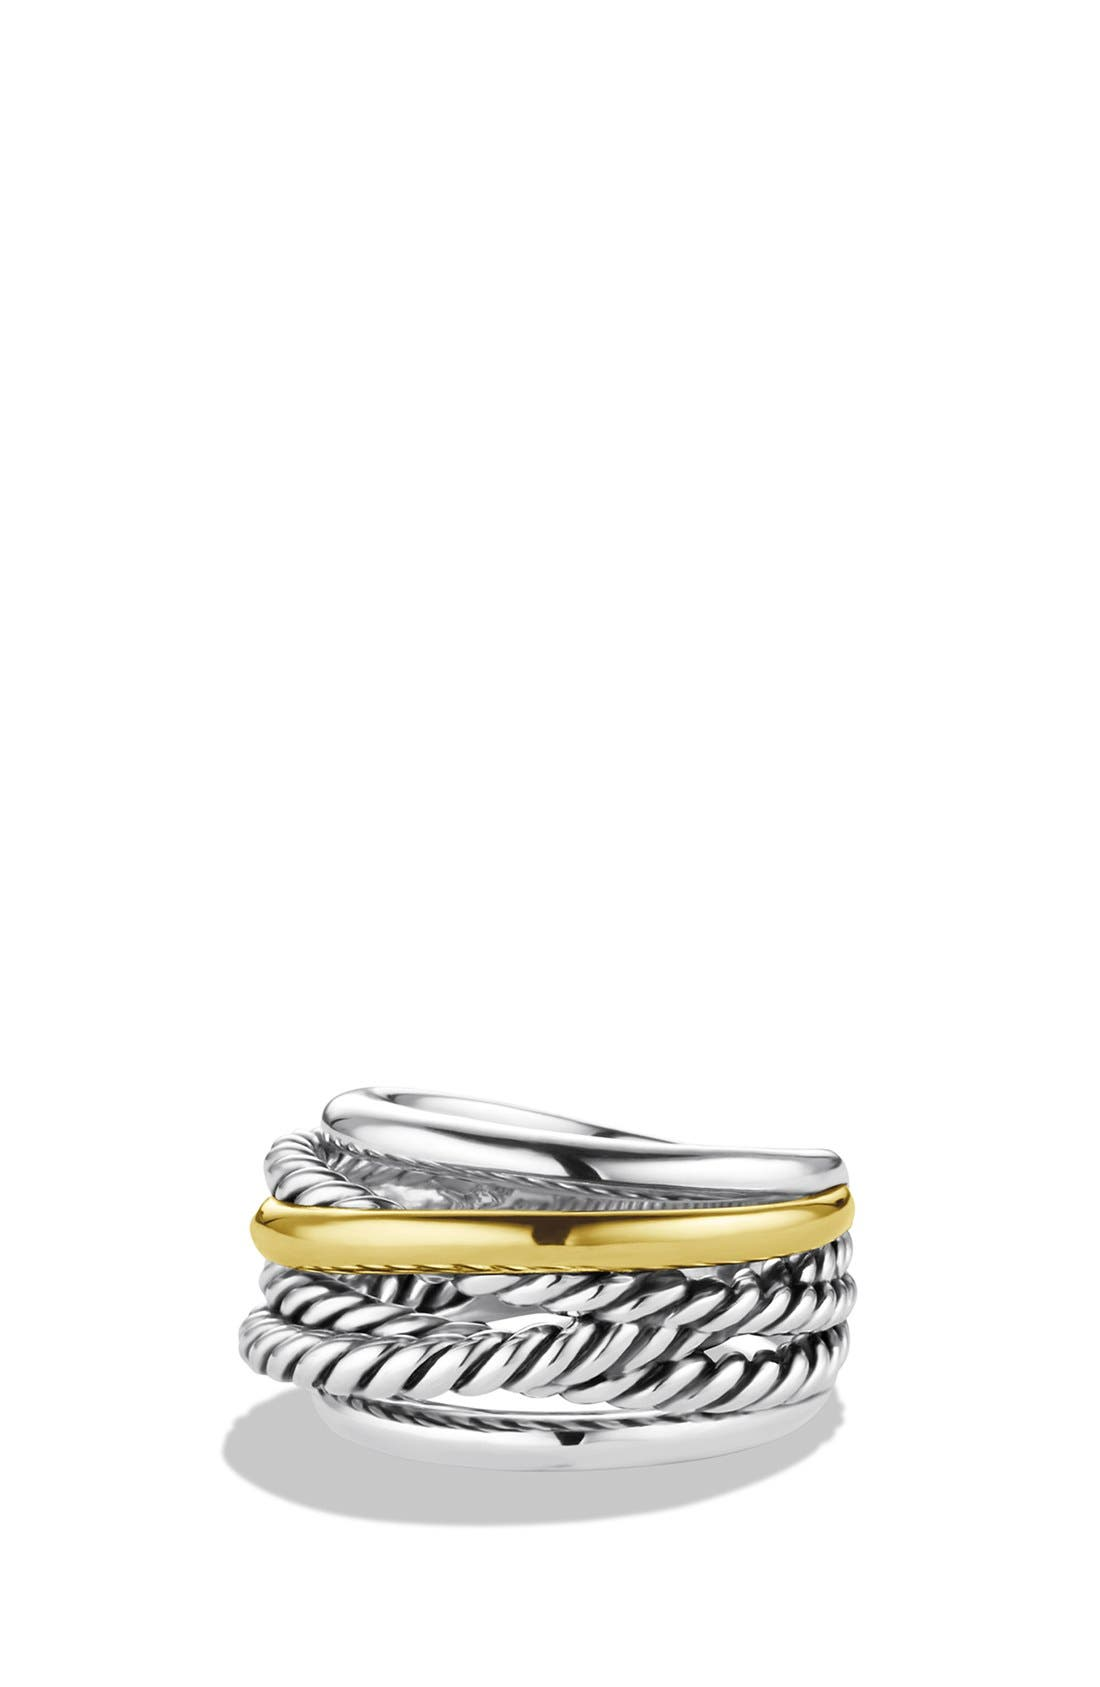 Main Image - David Yurman 'Crossover' Narrow Ring with Gold